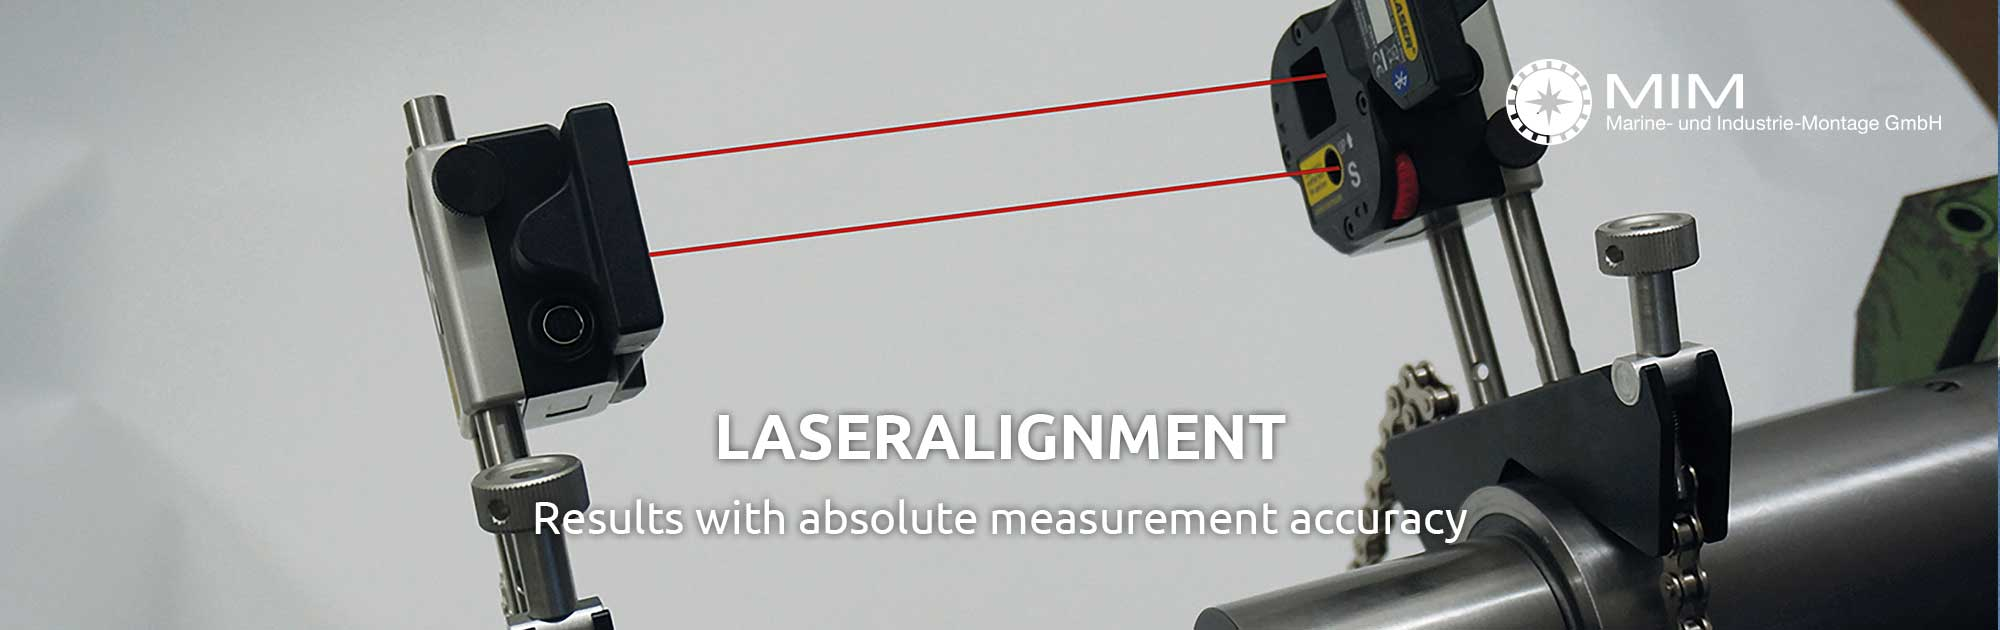 Laseralignment / Lasermeasurement of of rotating machines, turbines and pumps